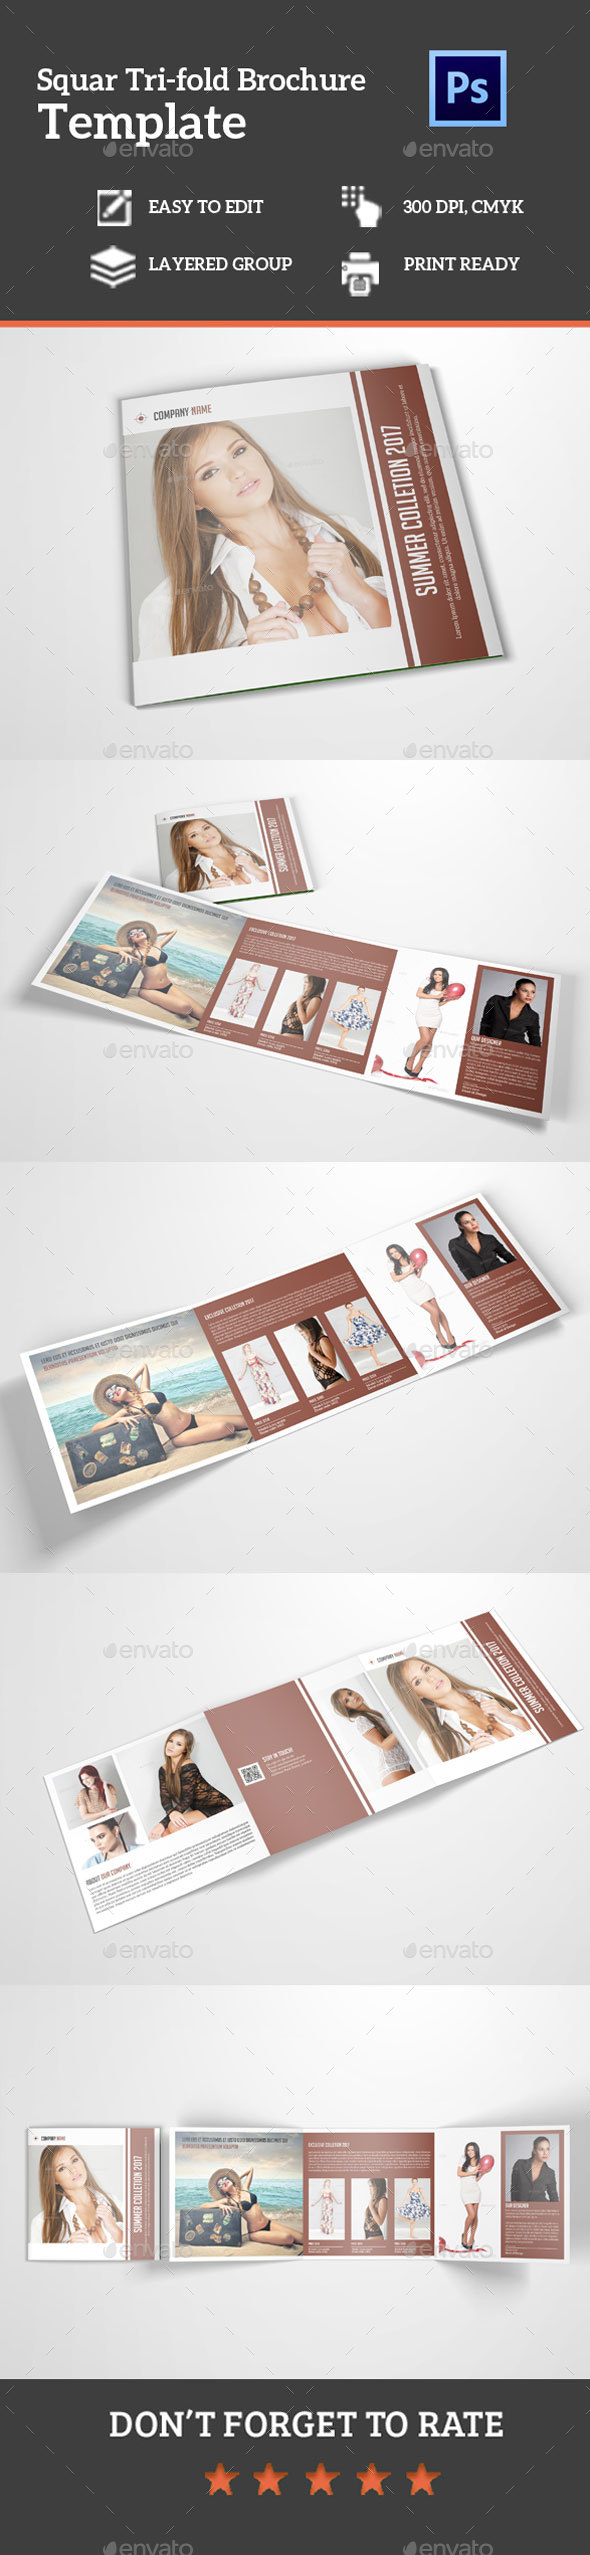 Square Tri-fold product Brochure - Corporate Brochures